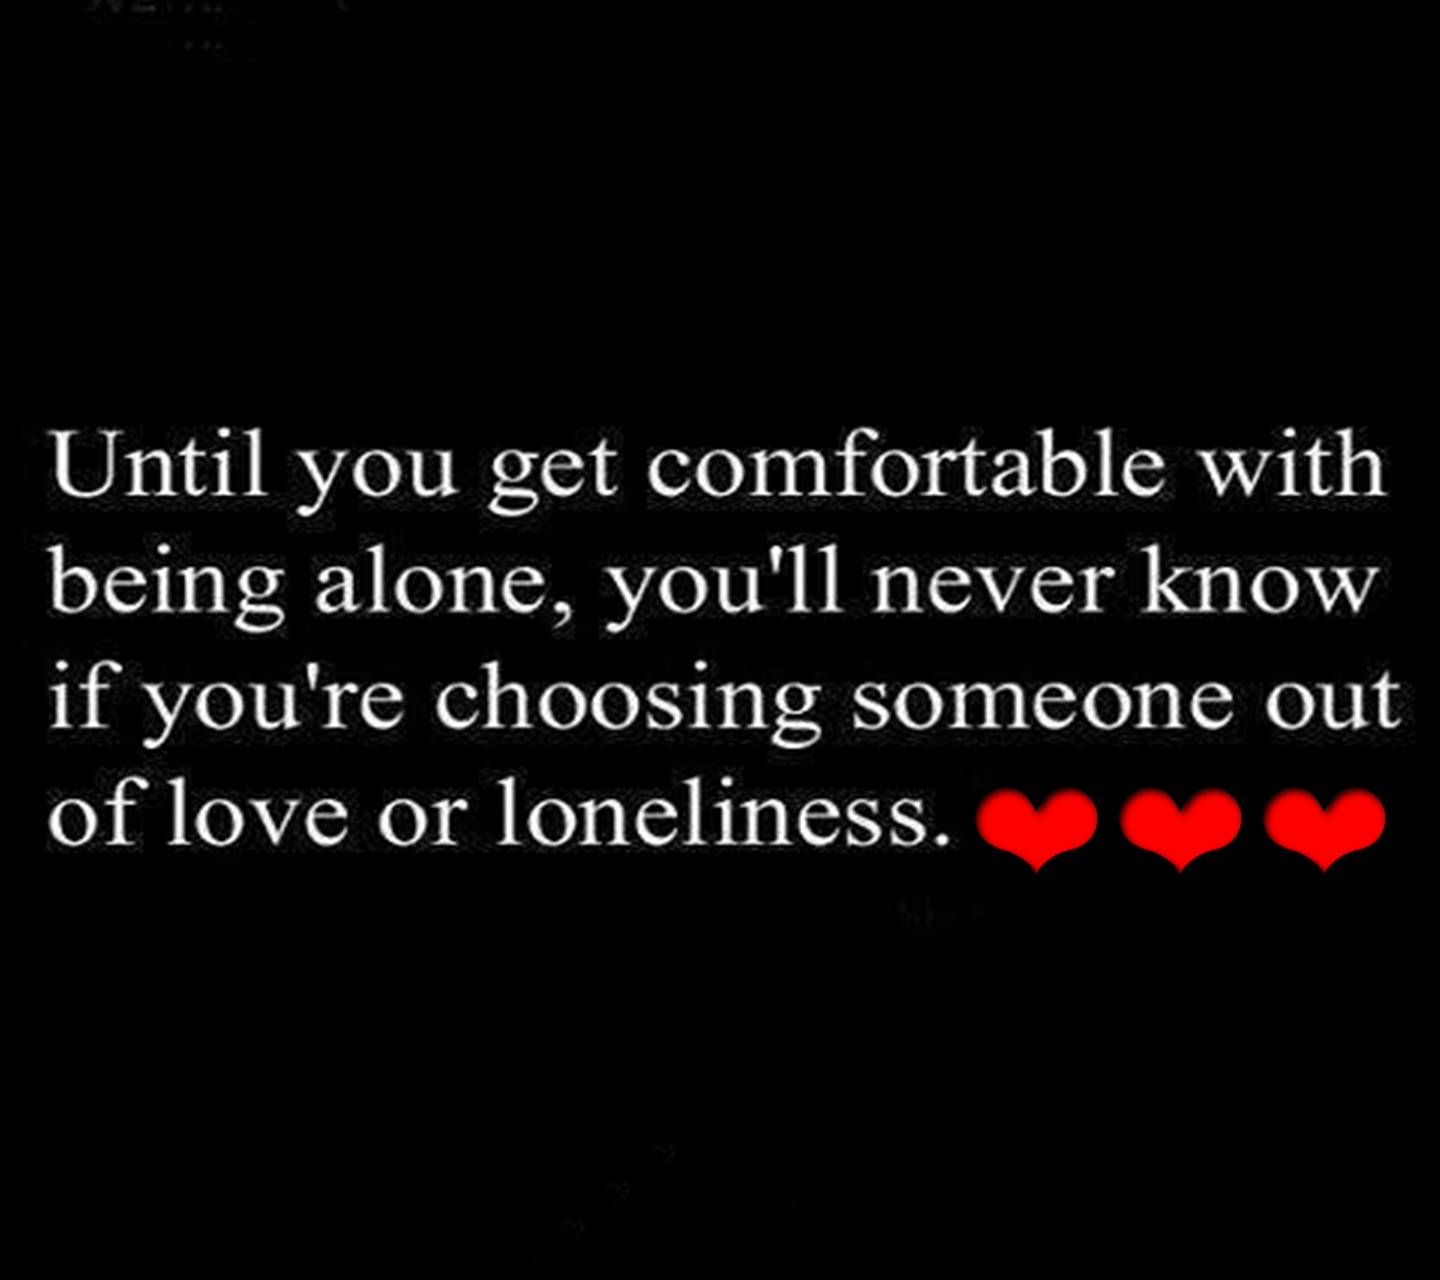 Love Of Loneliness